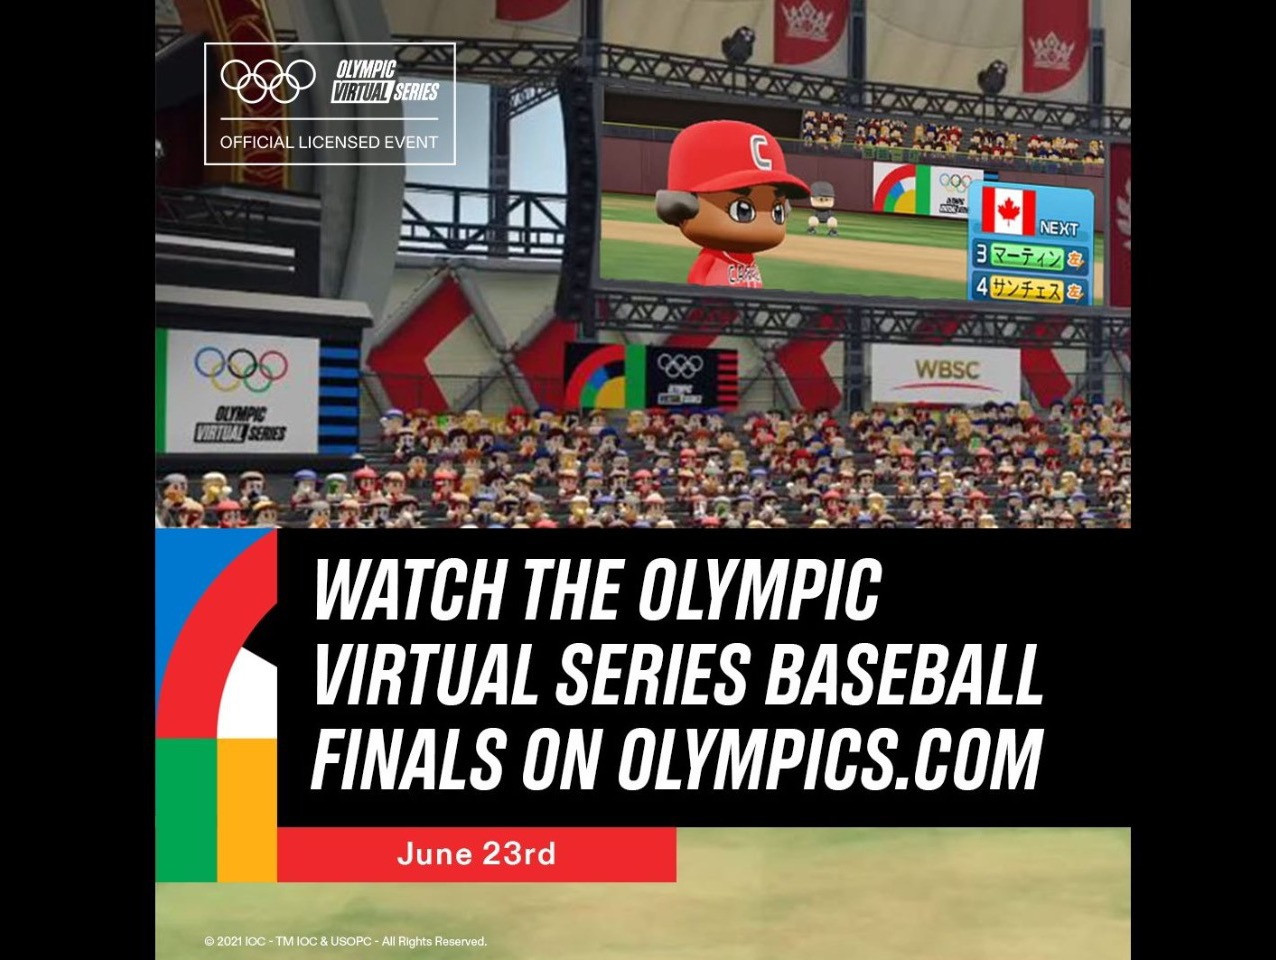 Olympic Virtual Series baseball finals to be broadcast worldwide